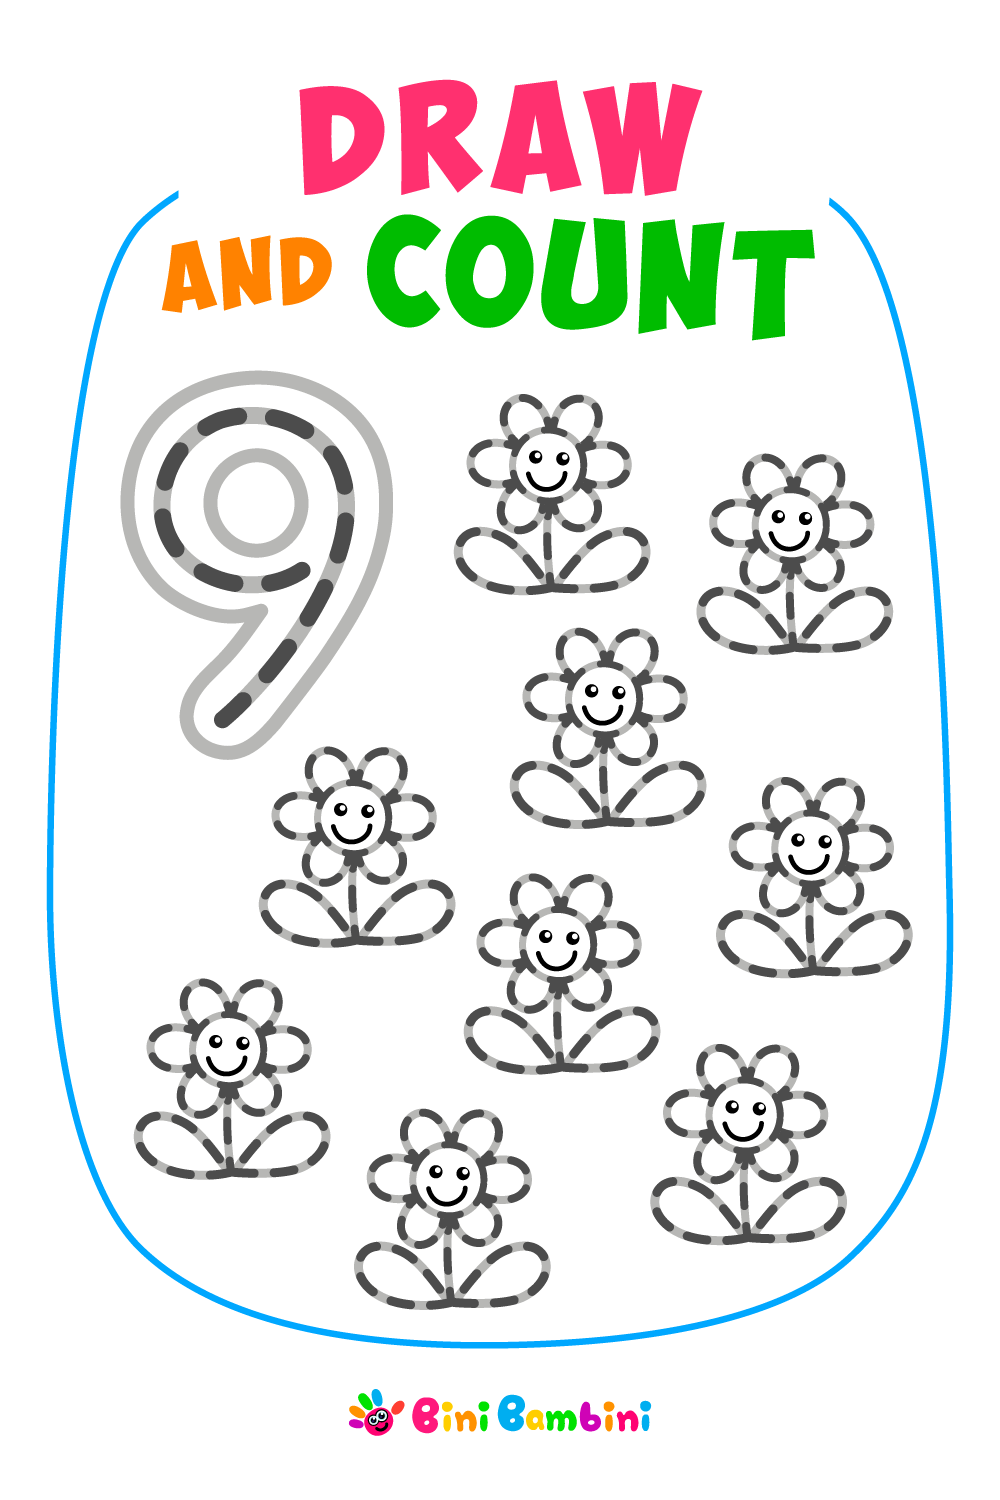 Free Coloring Worksheets For Kids Drawing Games For Kids Printables Free Kids Art Education Resources